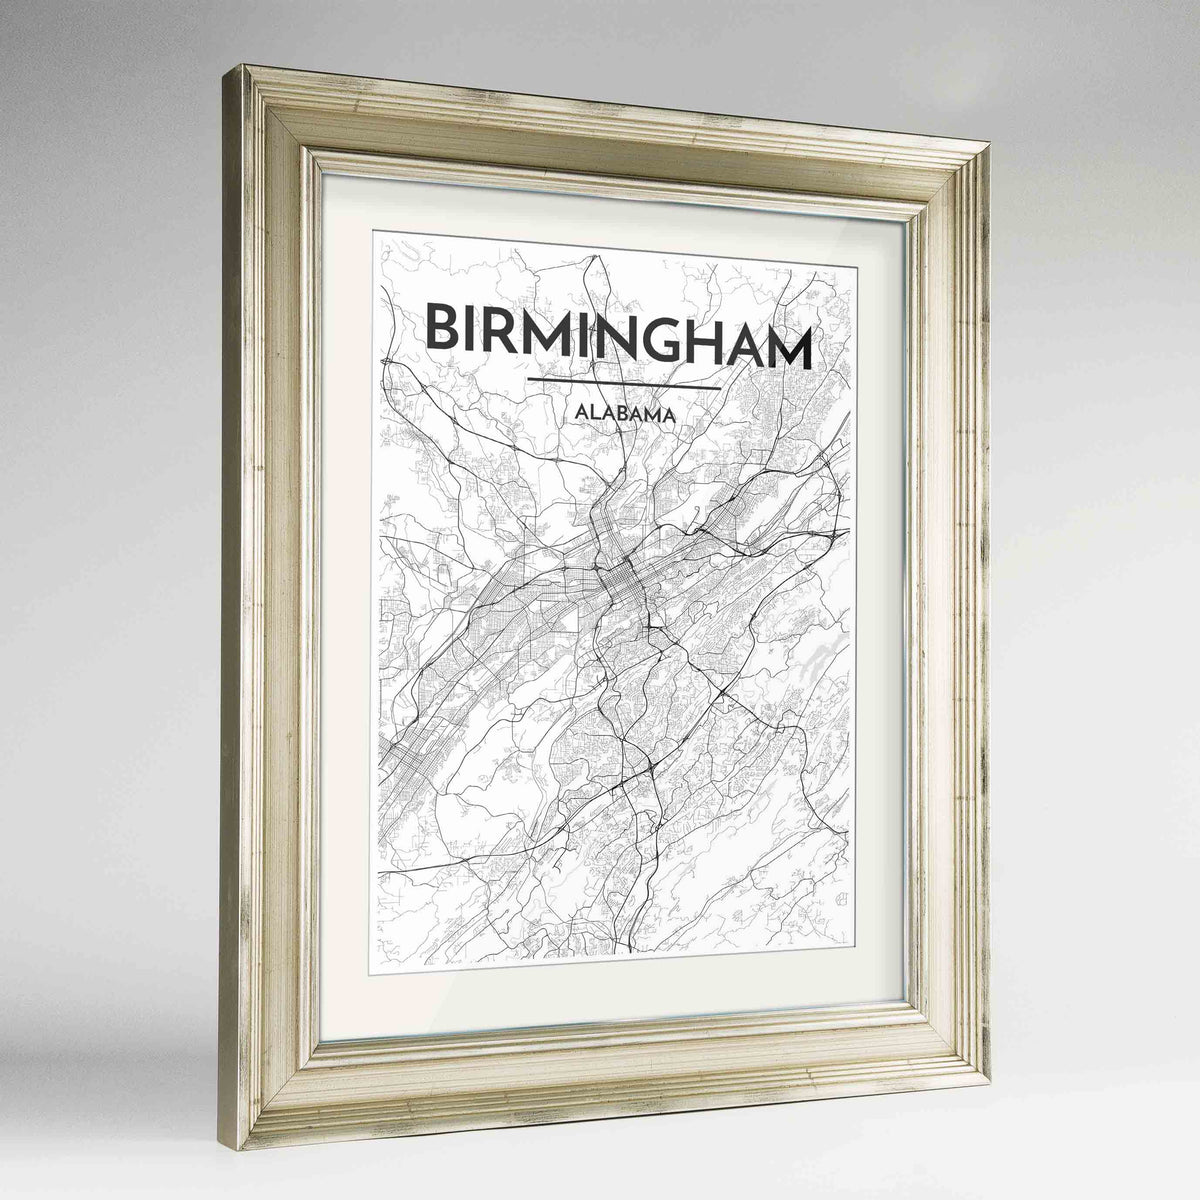 "Framed Birmingham - Alabama Map Art Print 24x36"" Champagne frame Point Two Design Group"